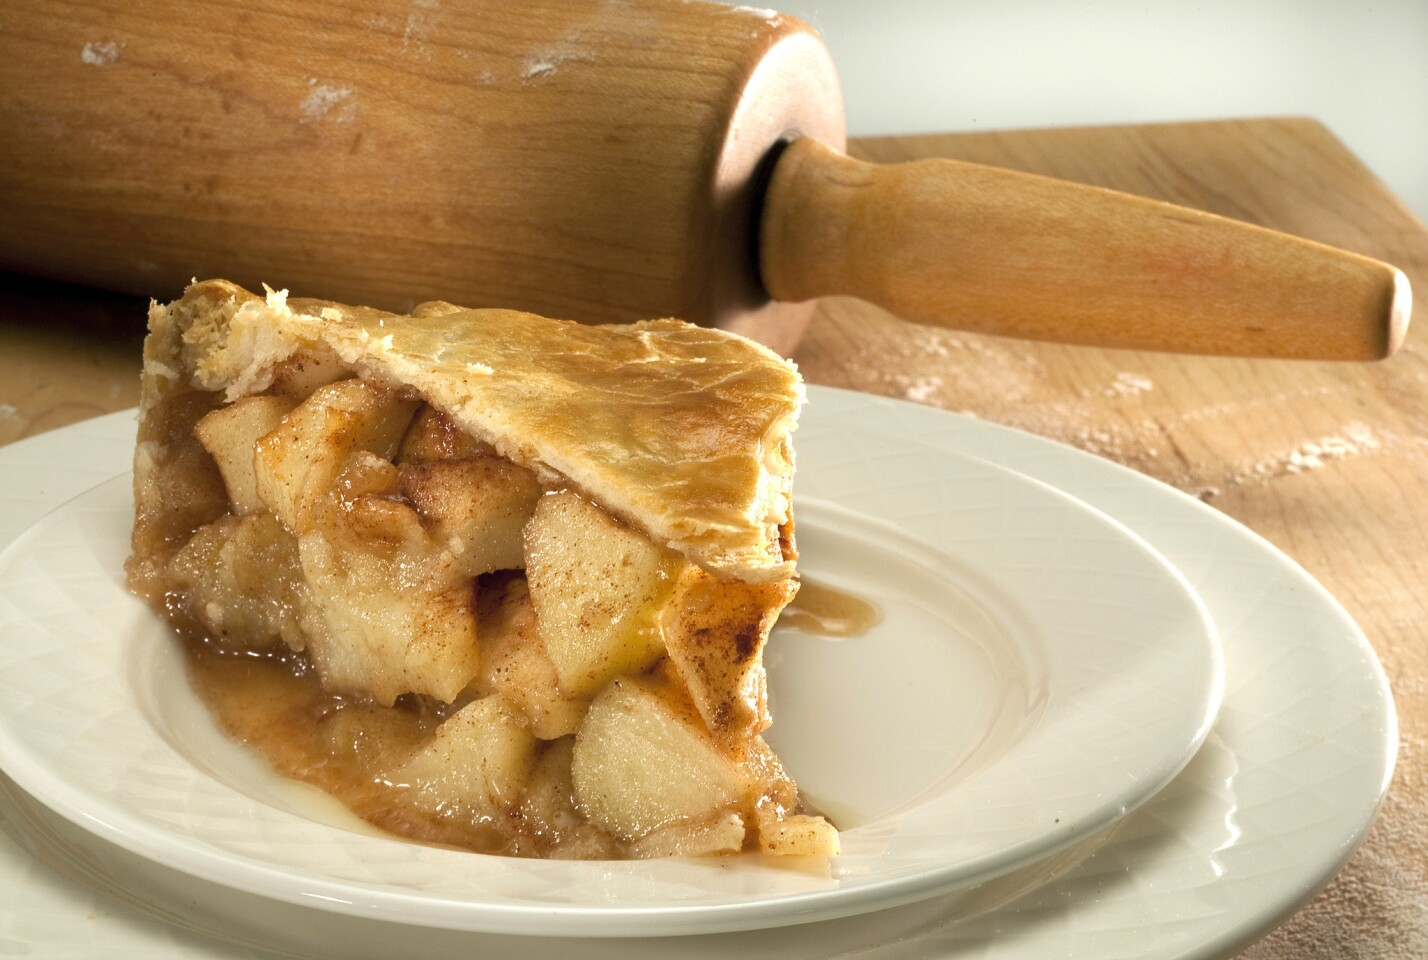 Cut into it and this award-winning apple pie is all about the fruit, generous hunks of gently baked apple, its pure, clean flavor enhanced by a sweet, spicy glaze. Click here for the recipe.